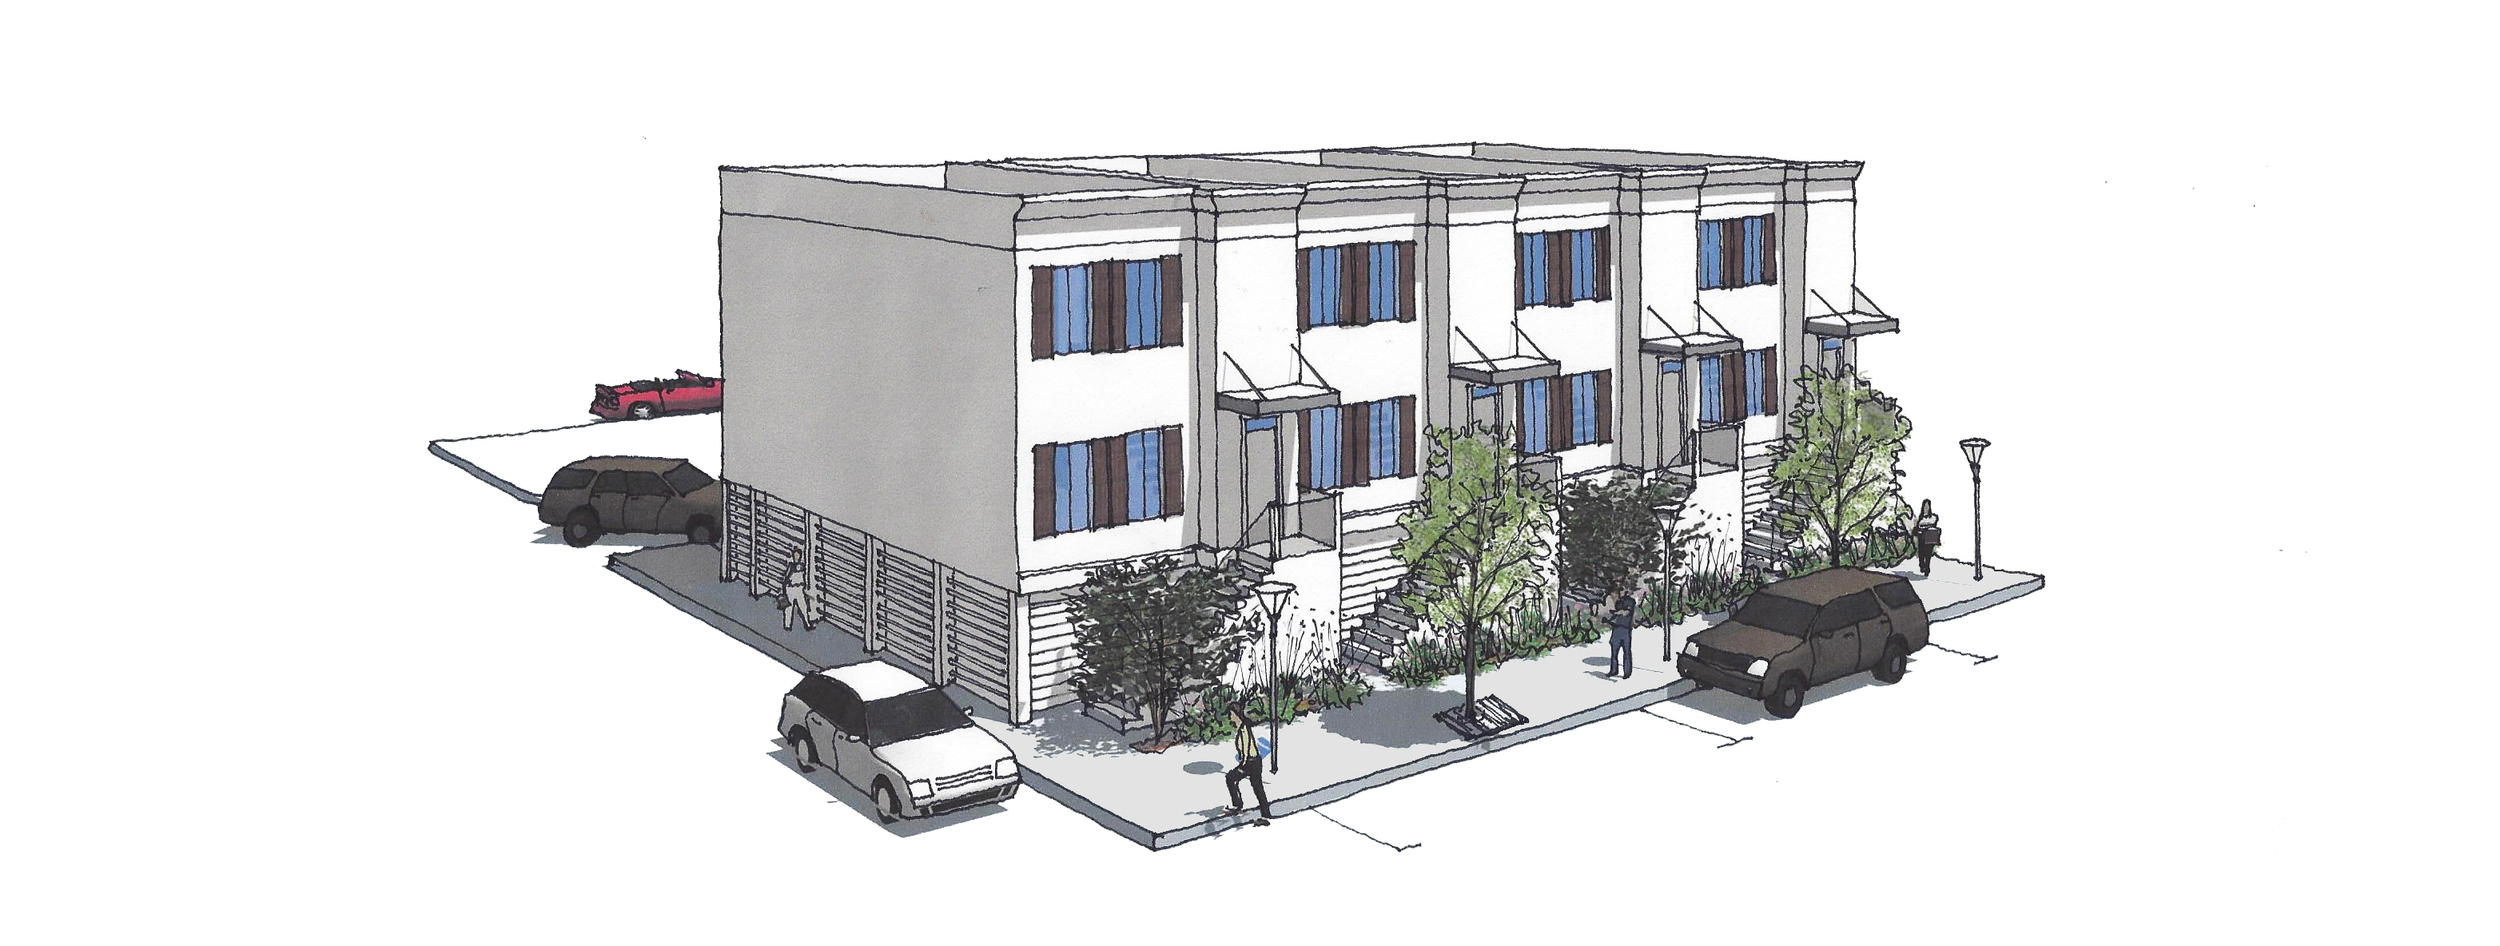 Lot3_townhome withparking under.png